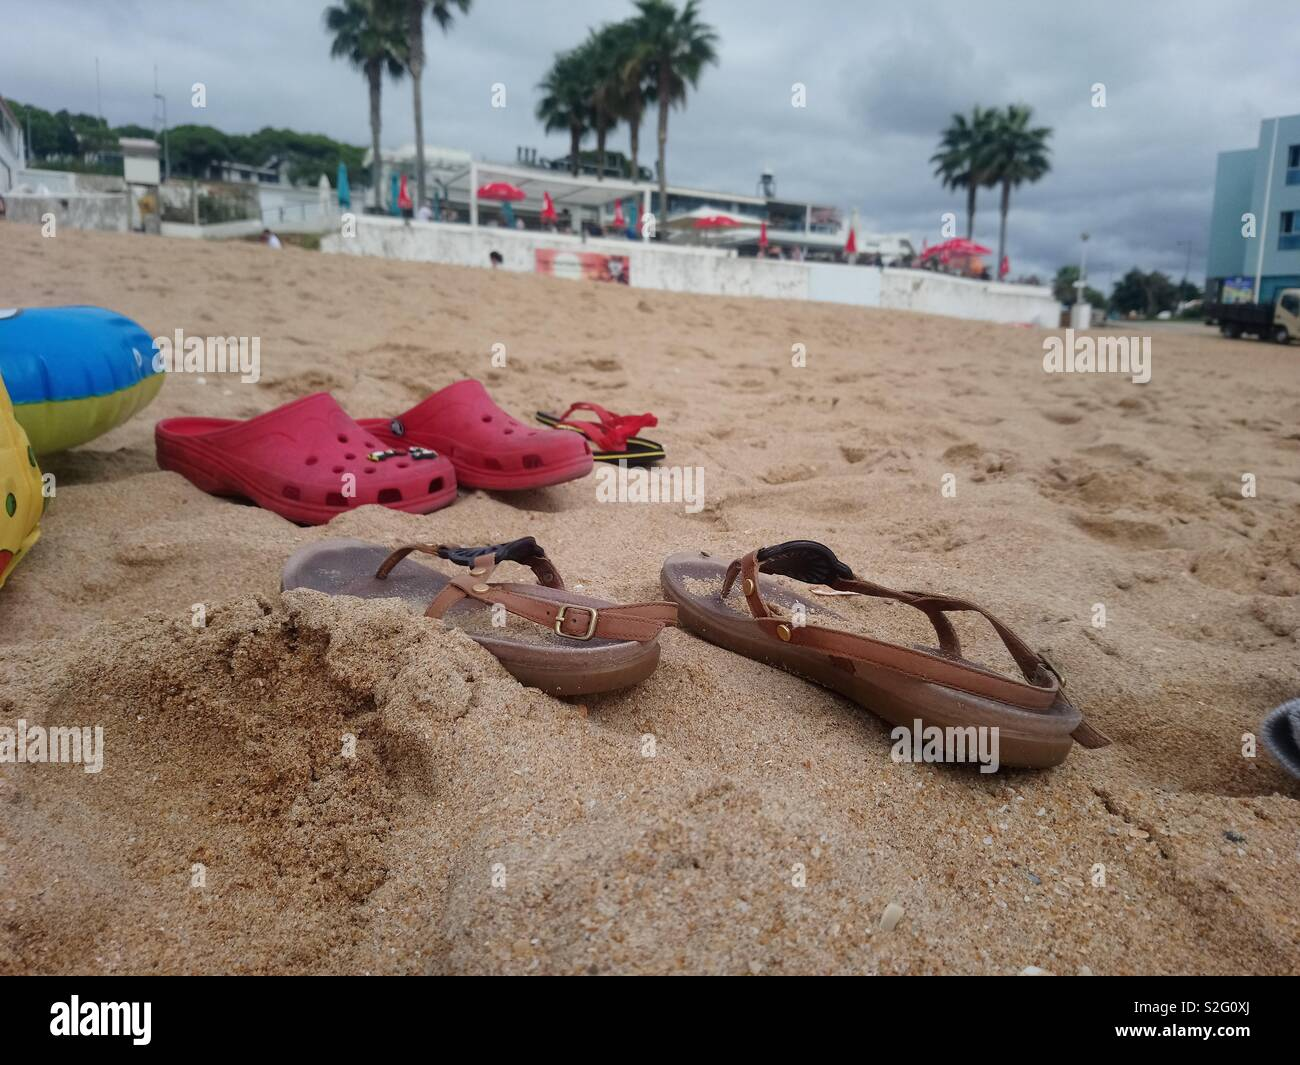 shoes on the beach - Stock Image